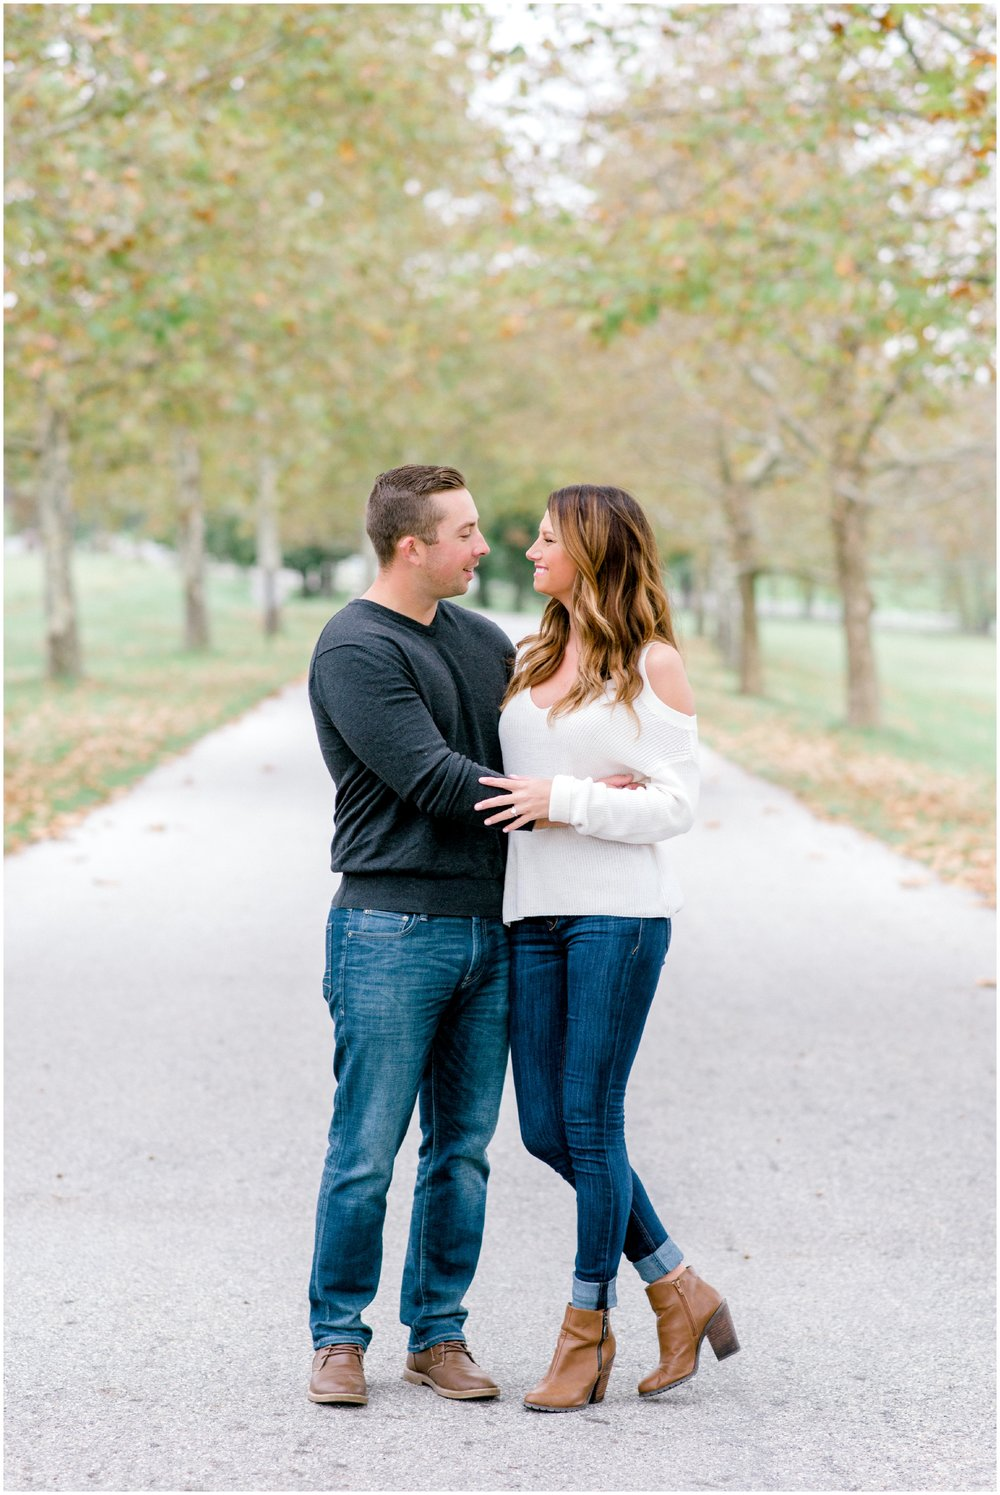 Fall Springton Manor Farm Engagement Session - Krista Brackin Photography_0029.jpg